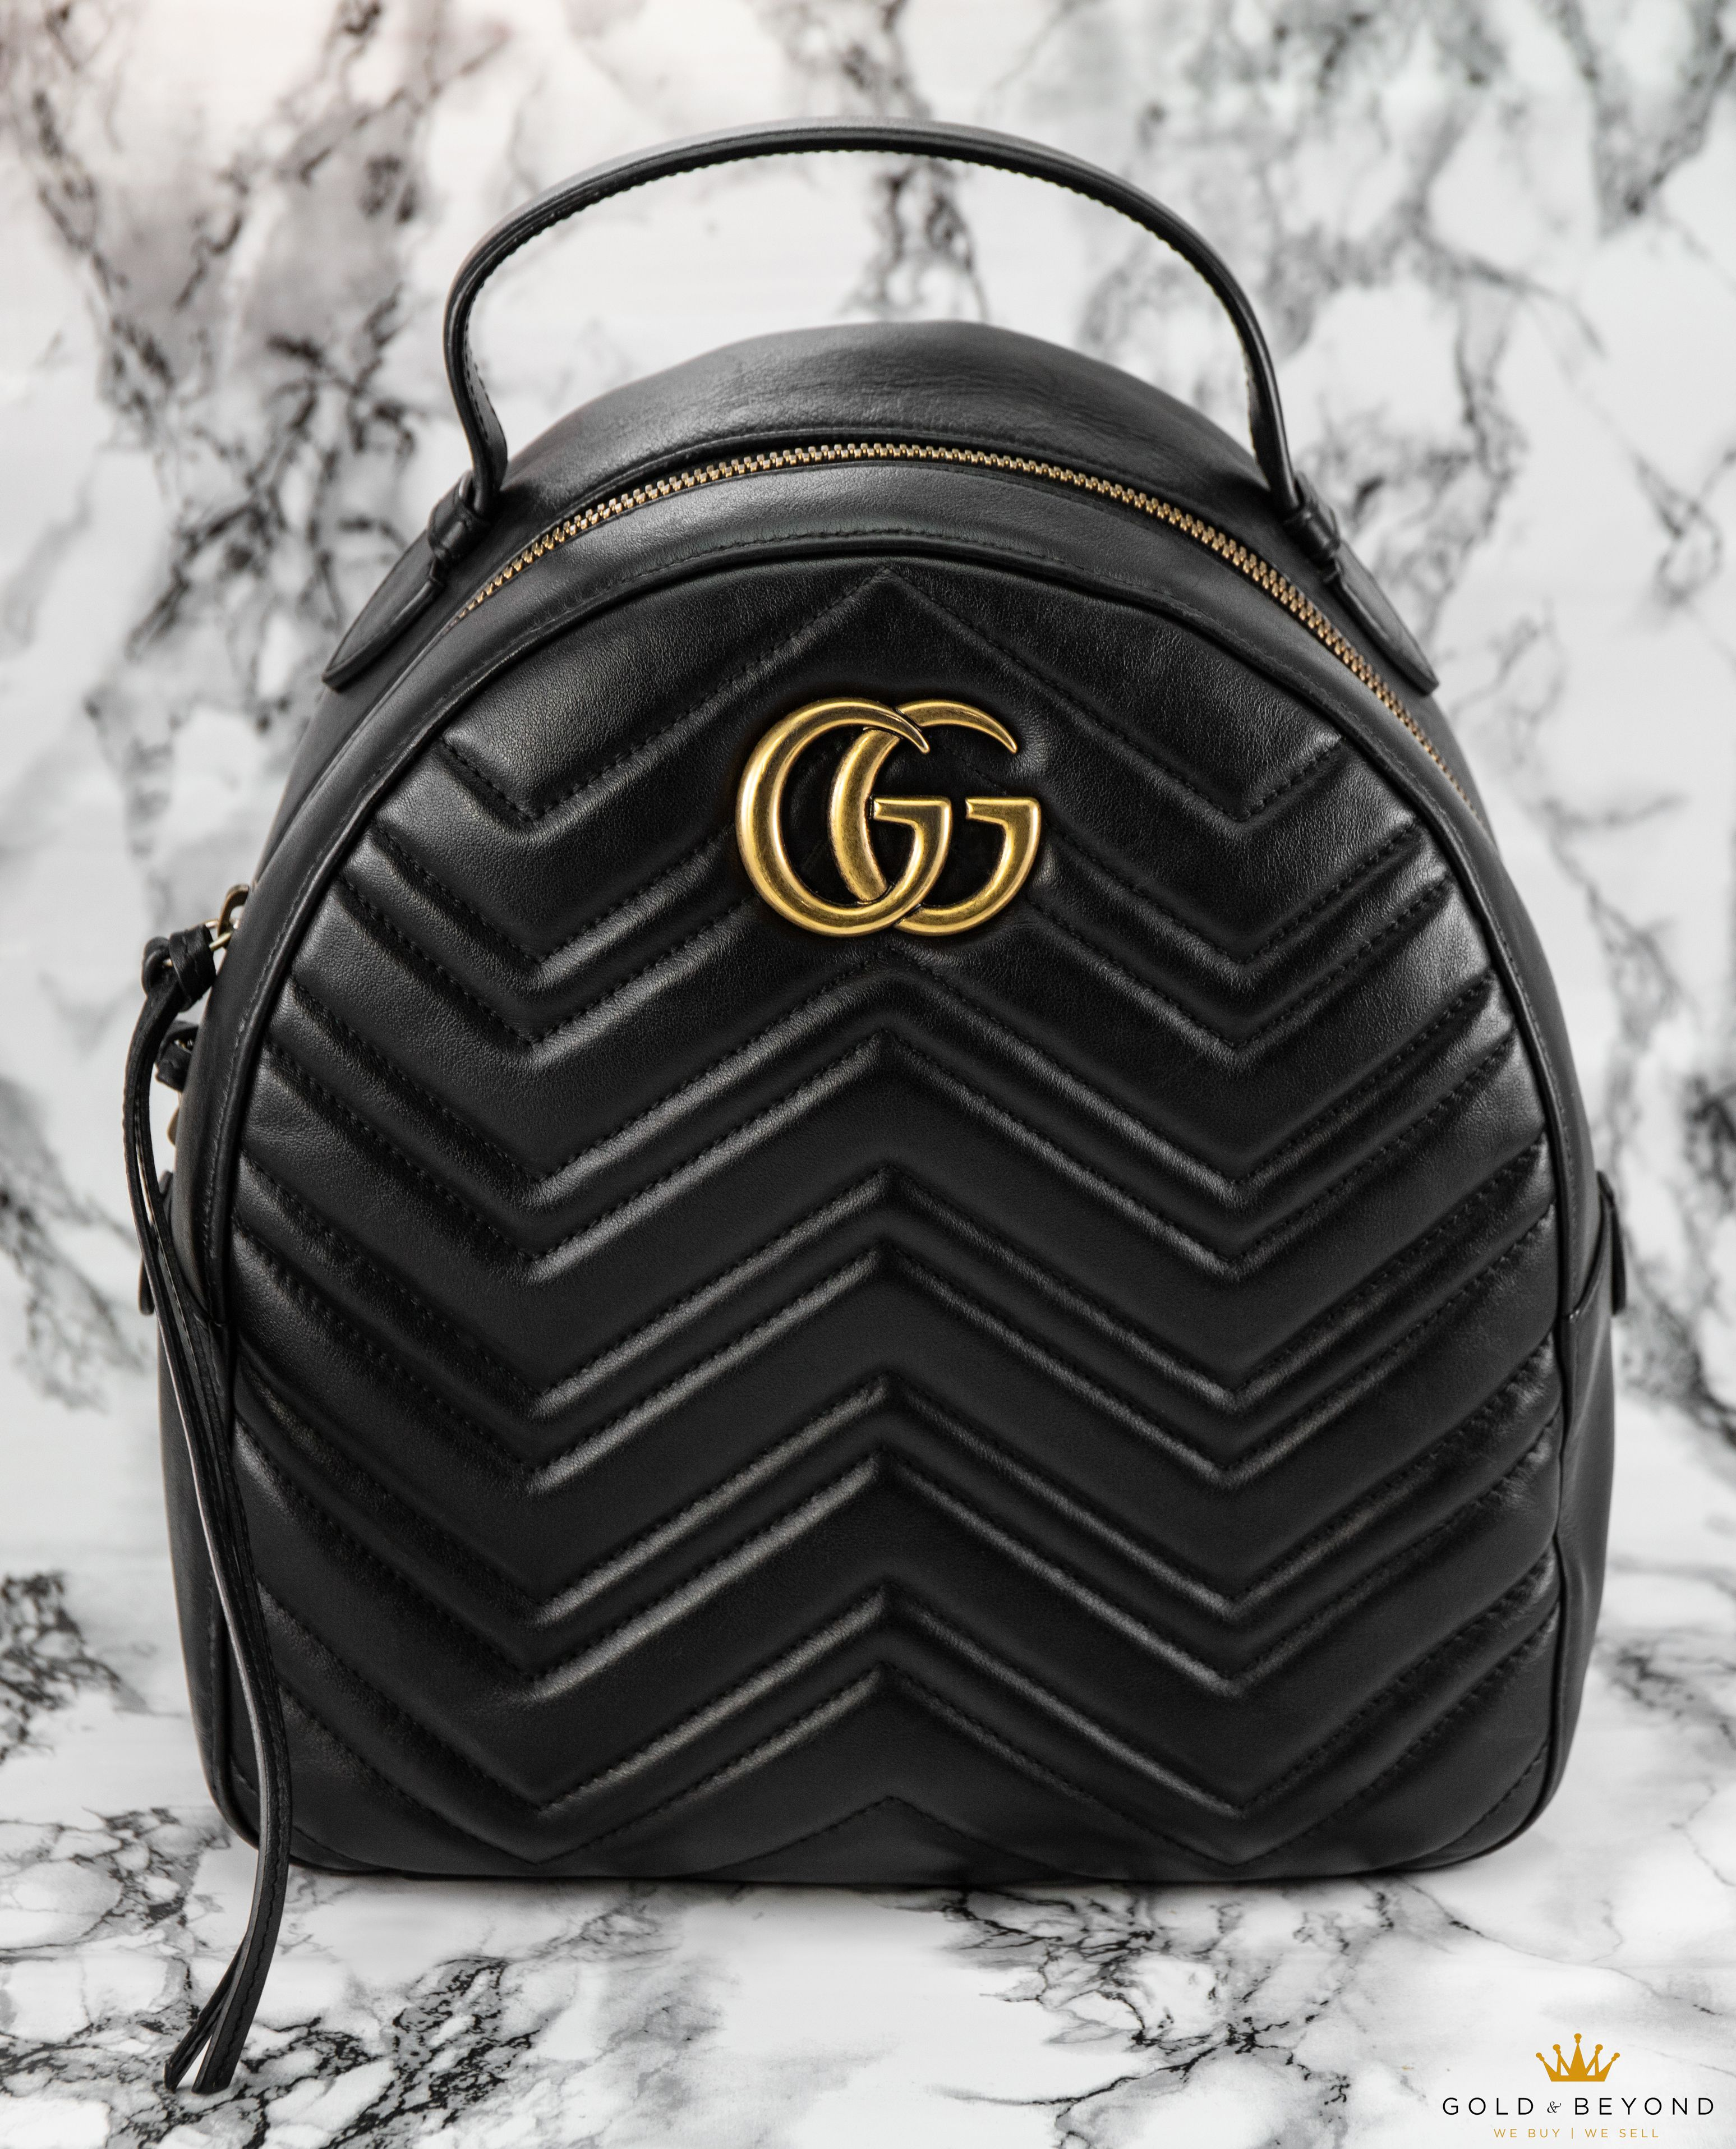 47fd403b5a74 We buy and sell authentic Gucci backpacks daily. 24hr customer service  everyday. www.goldandbeyond.com/ 702-396-3333 376 W. Sahara Ave, Las Vegas  NV 89102 ...